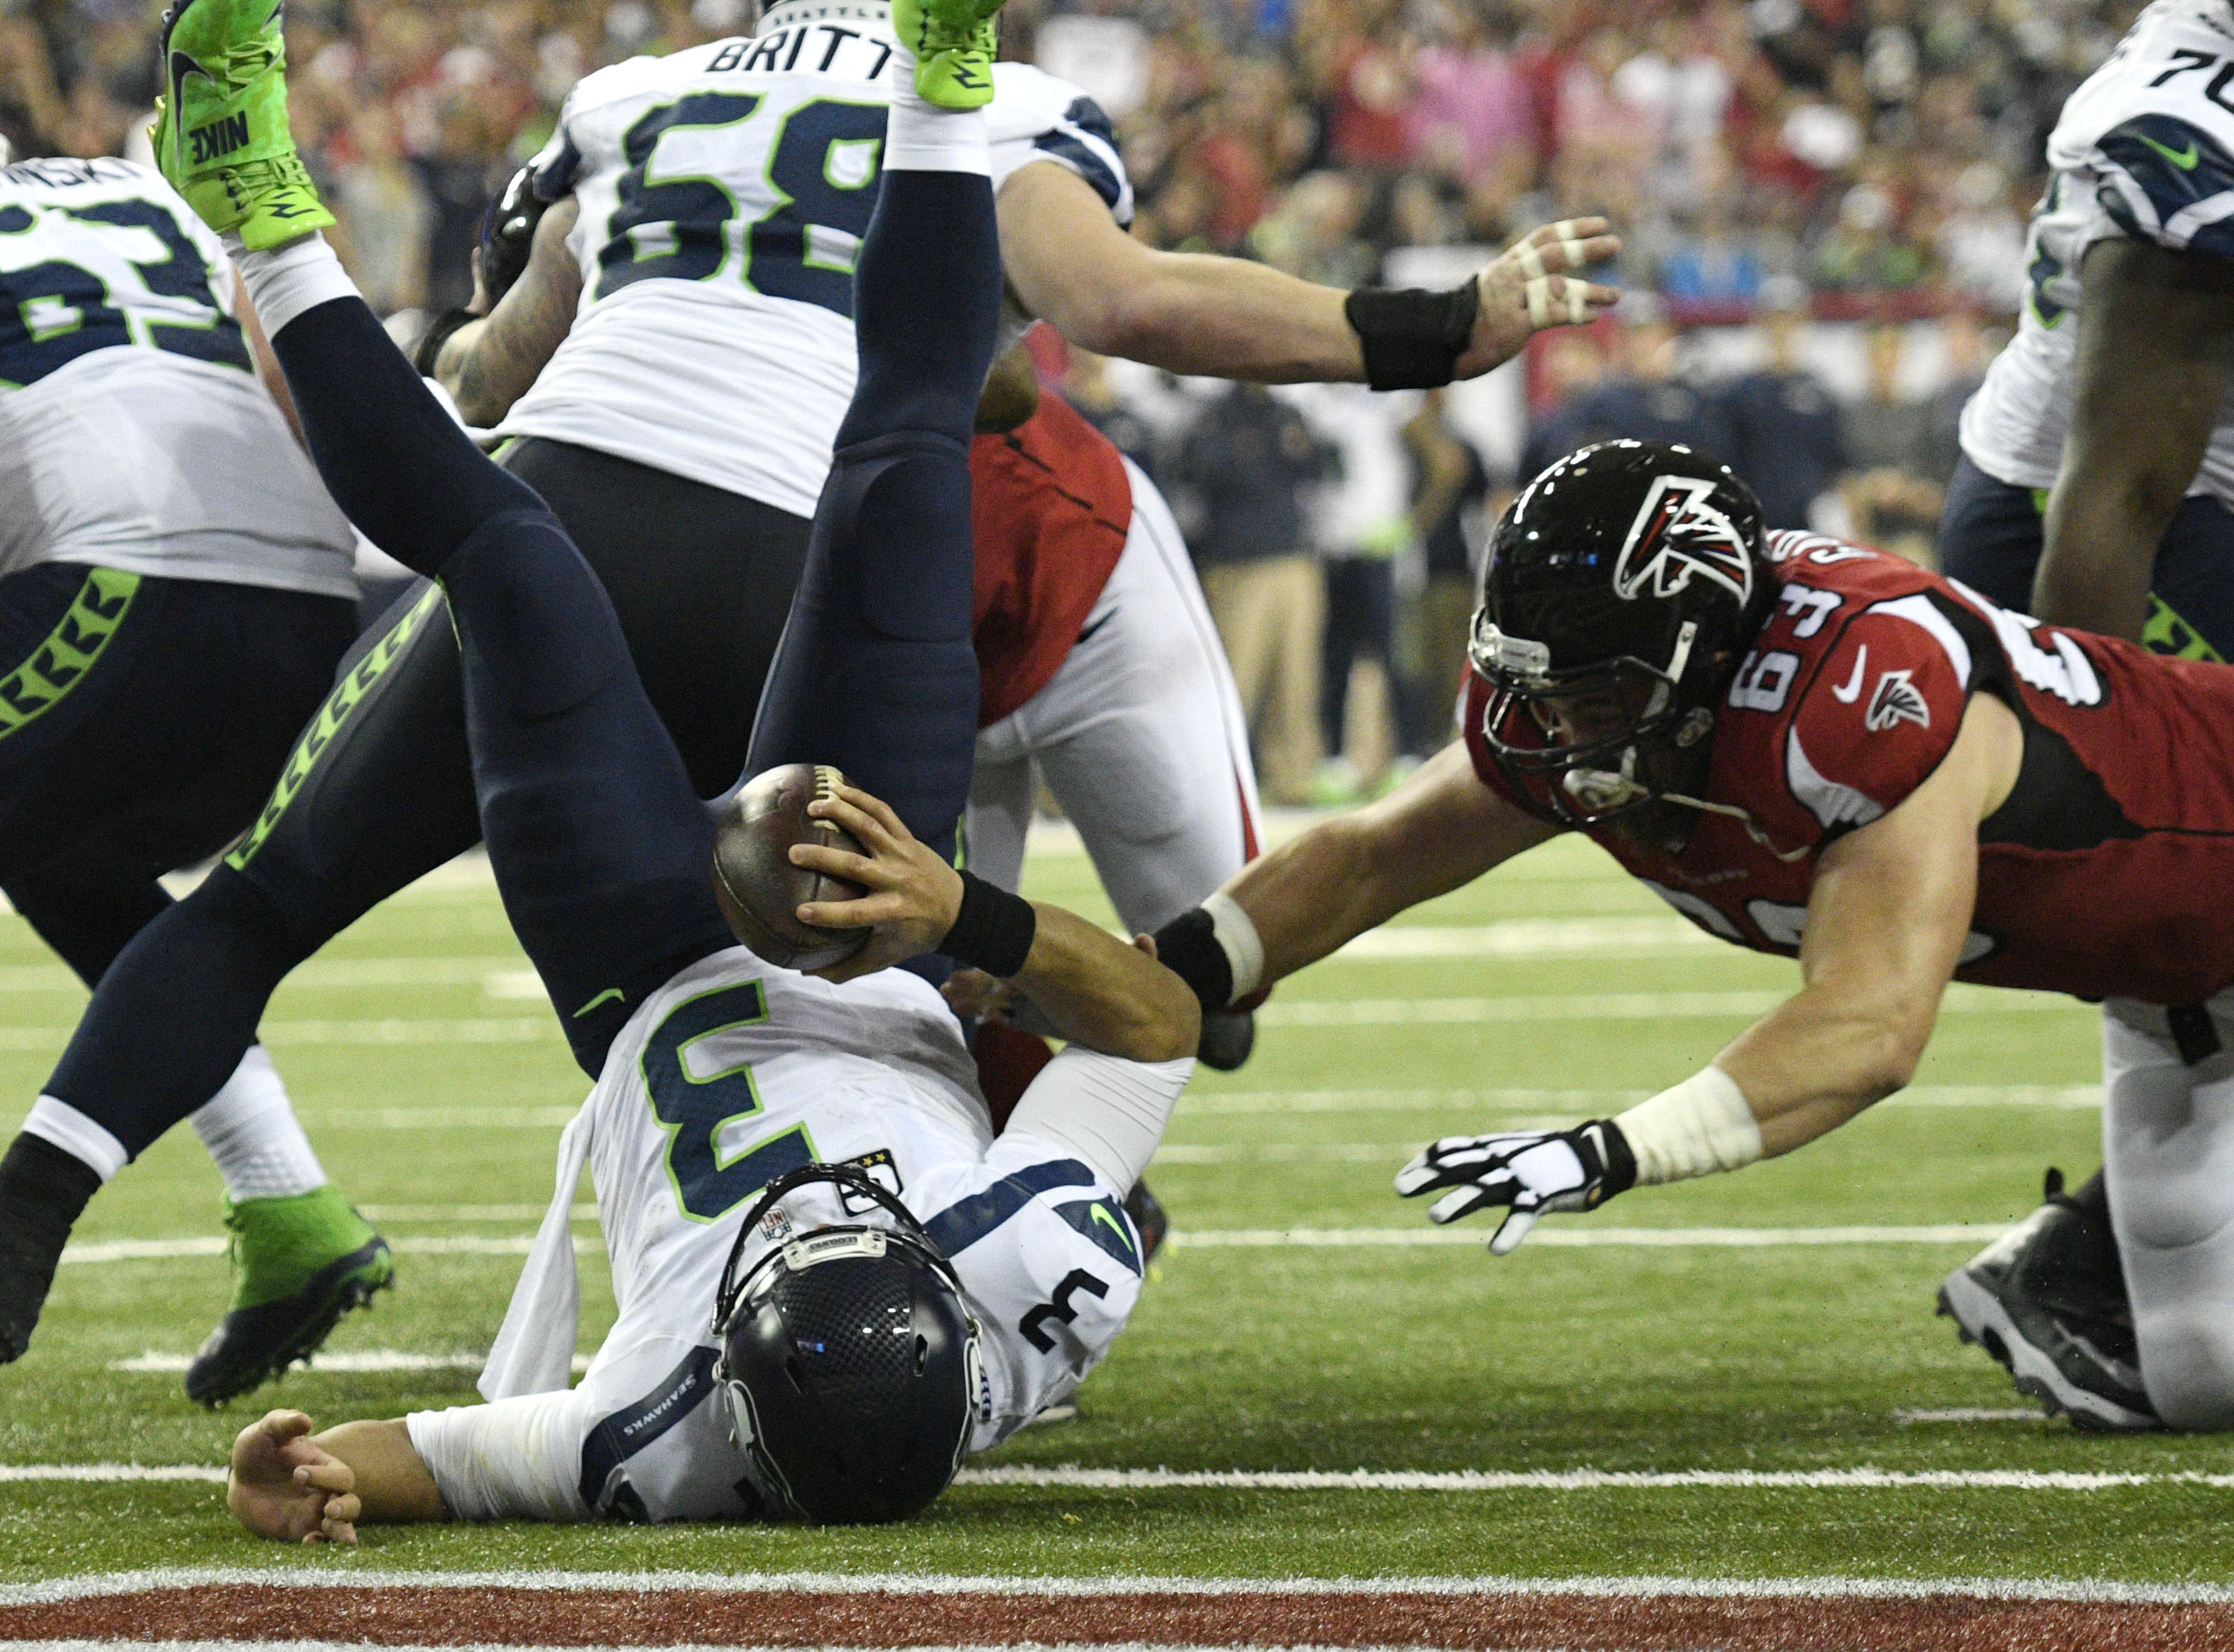 9809873-nfl-nfc-divisional-seattle-seahawks-at-atlanta-falcons